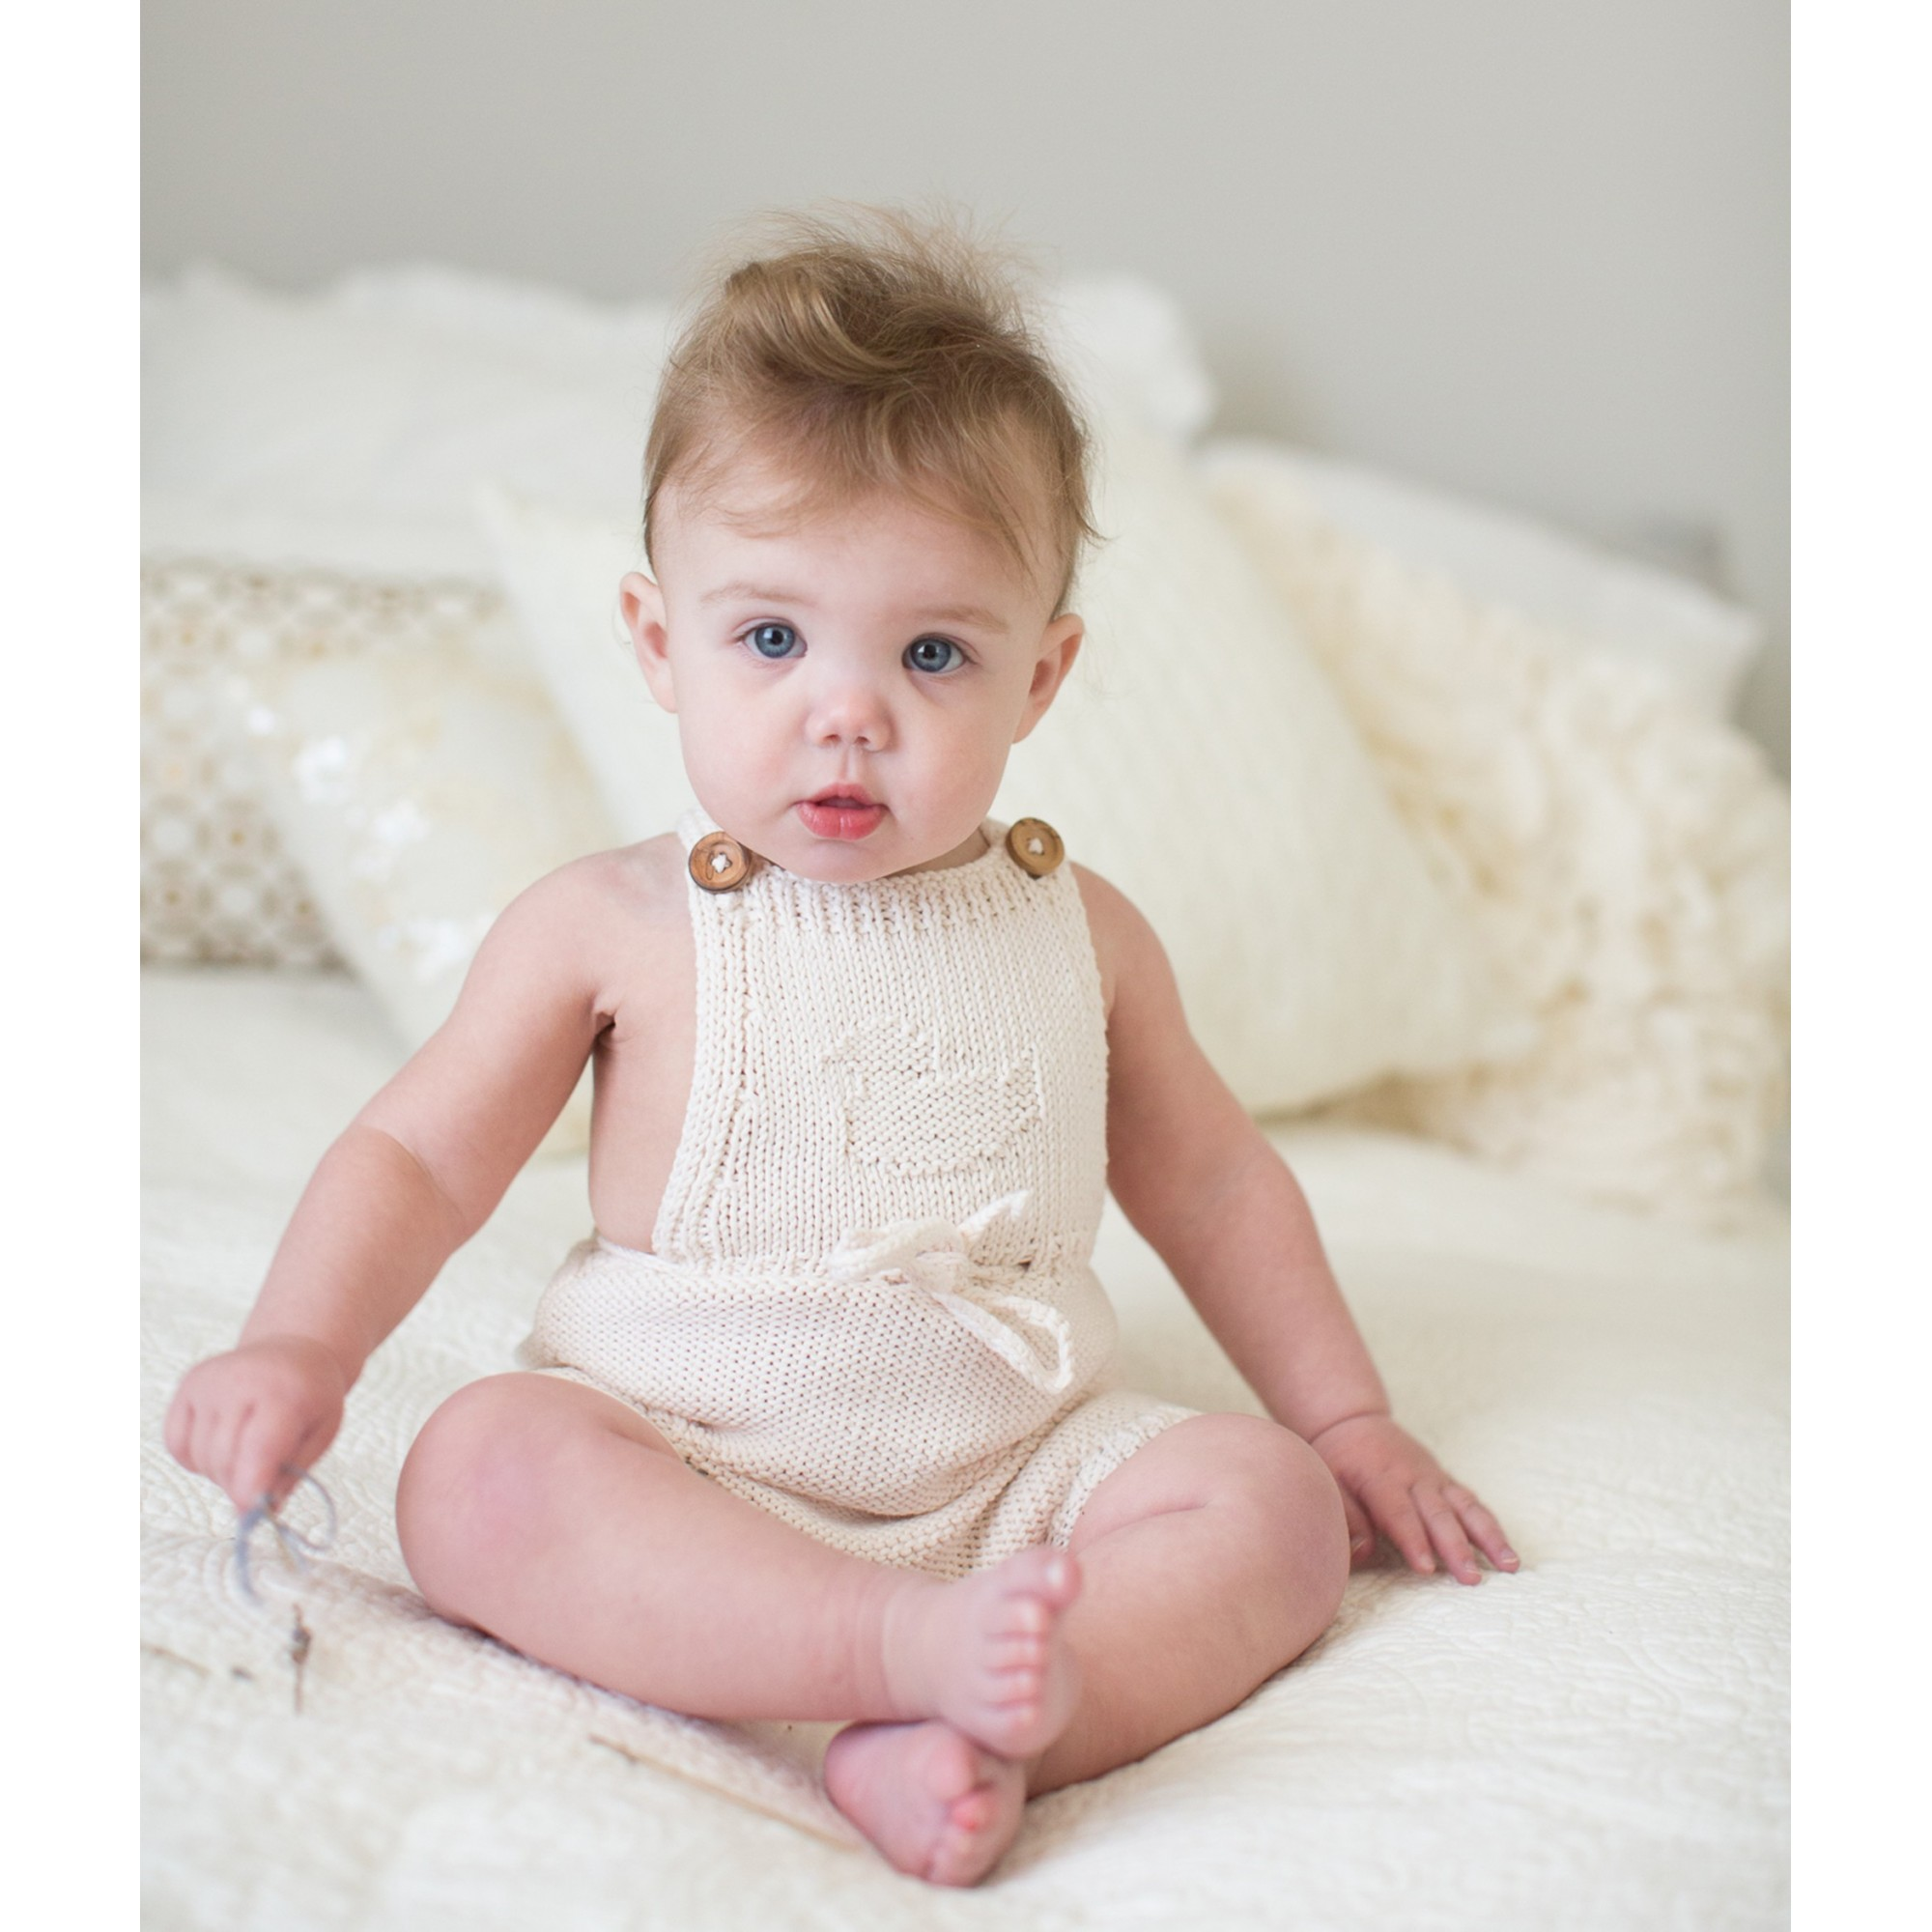 Félicie rompers for baby - made from cotton - natural white color - worn